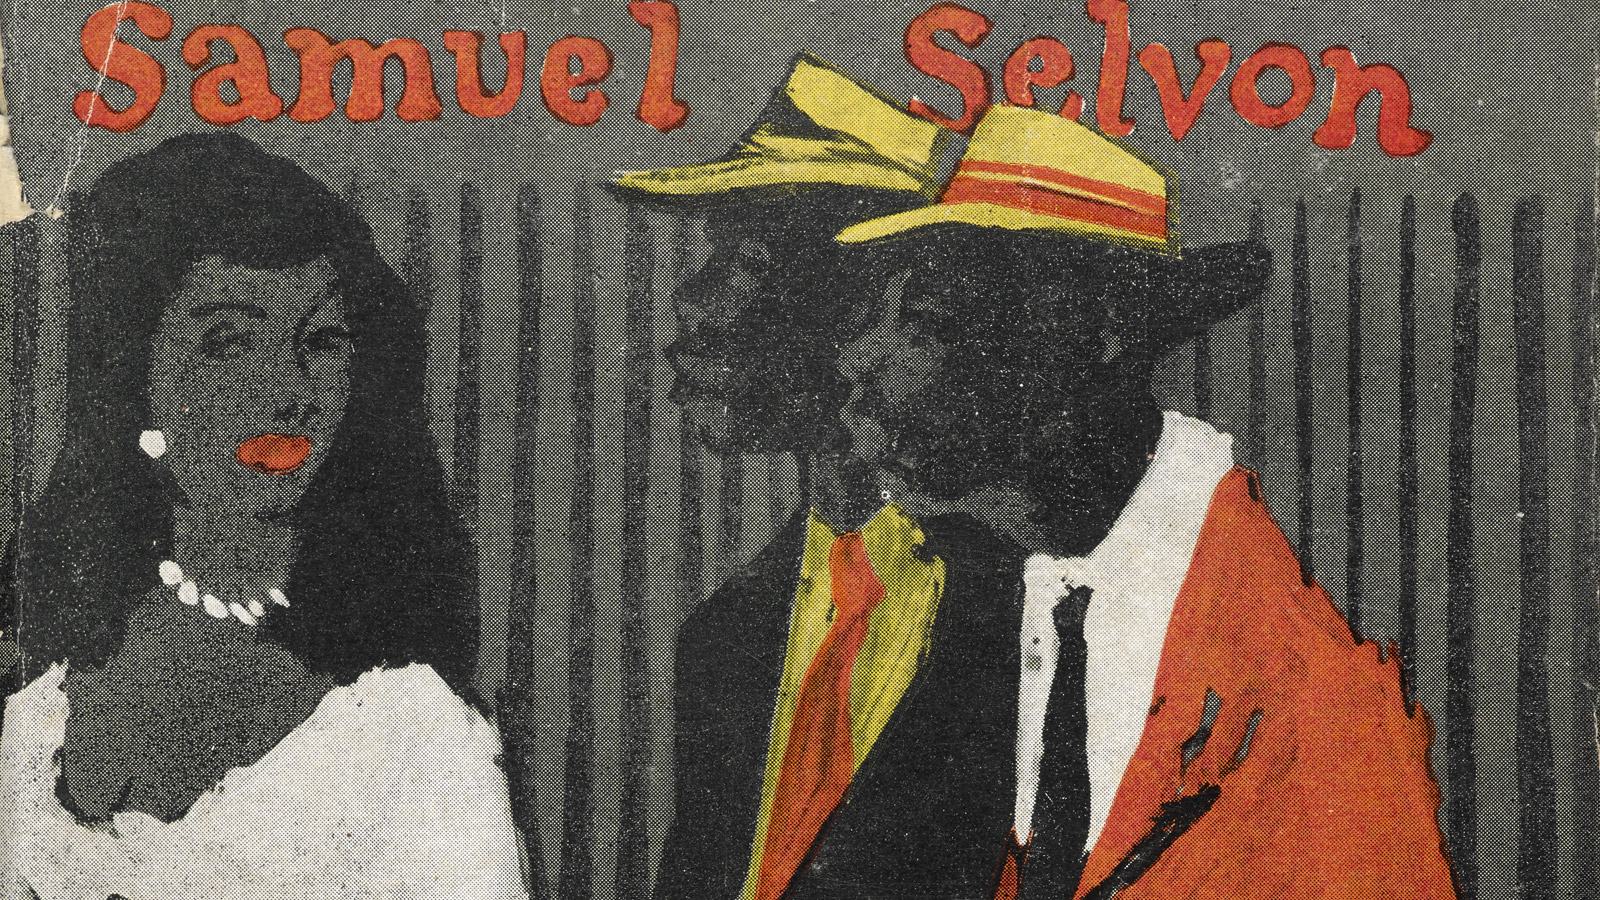 Crop of the first editon book cover for Samuel Selvon's The Lonely Londoners, showing an illustration of two Caribbean men in suits and a woman in pearls